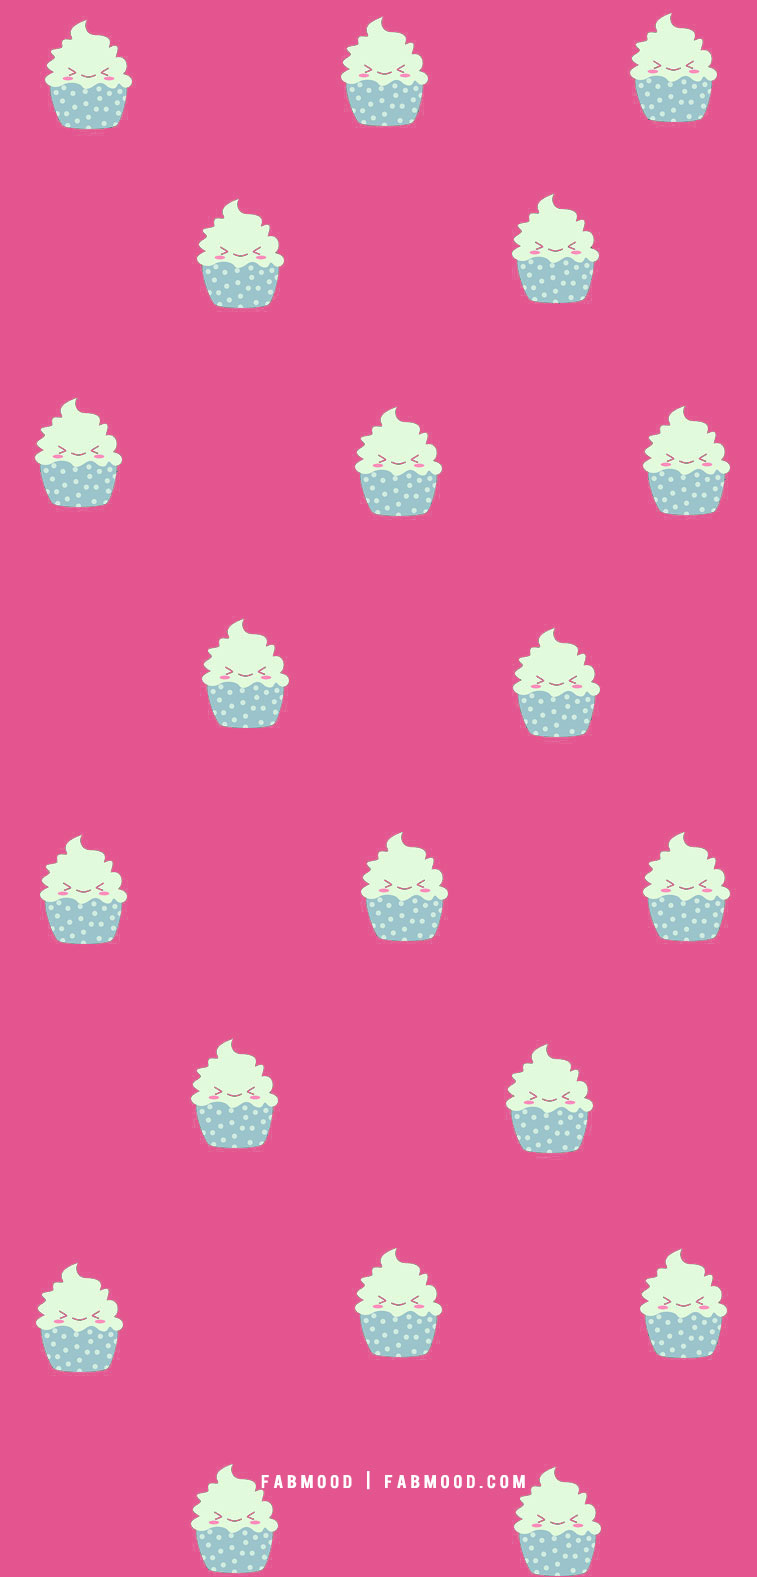 pink cupcake wallpaper, cupcake wallpaper for phone, cupcake wallpaper iphone, cupcake wallpaper screensaver, cupcake wallpaper lockscreen, cupcake wallpaper cute, cupcake wallpaper aesthetic